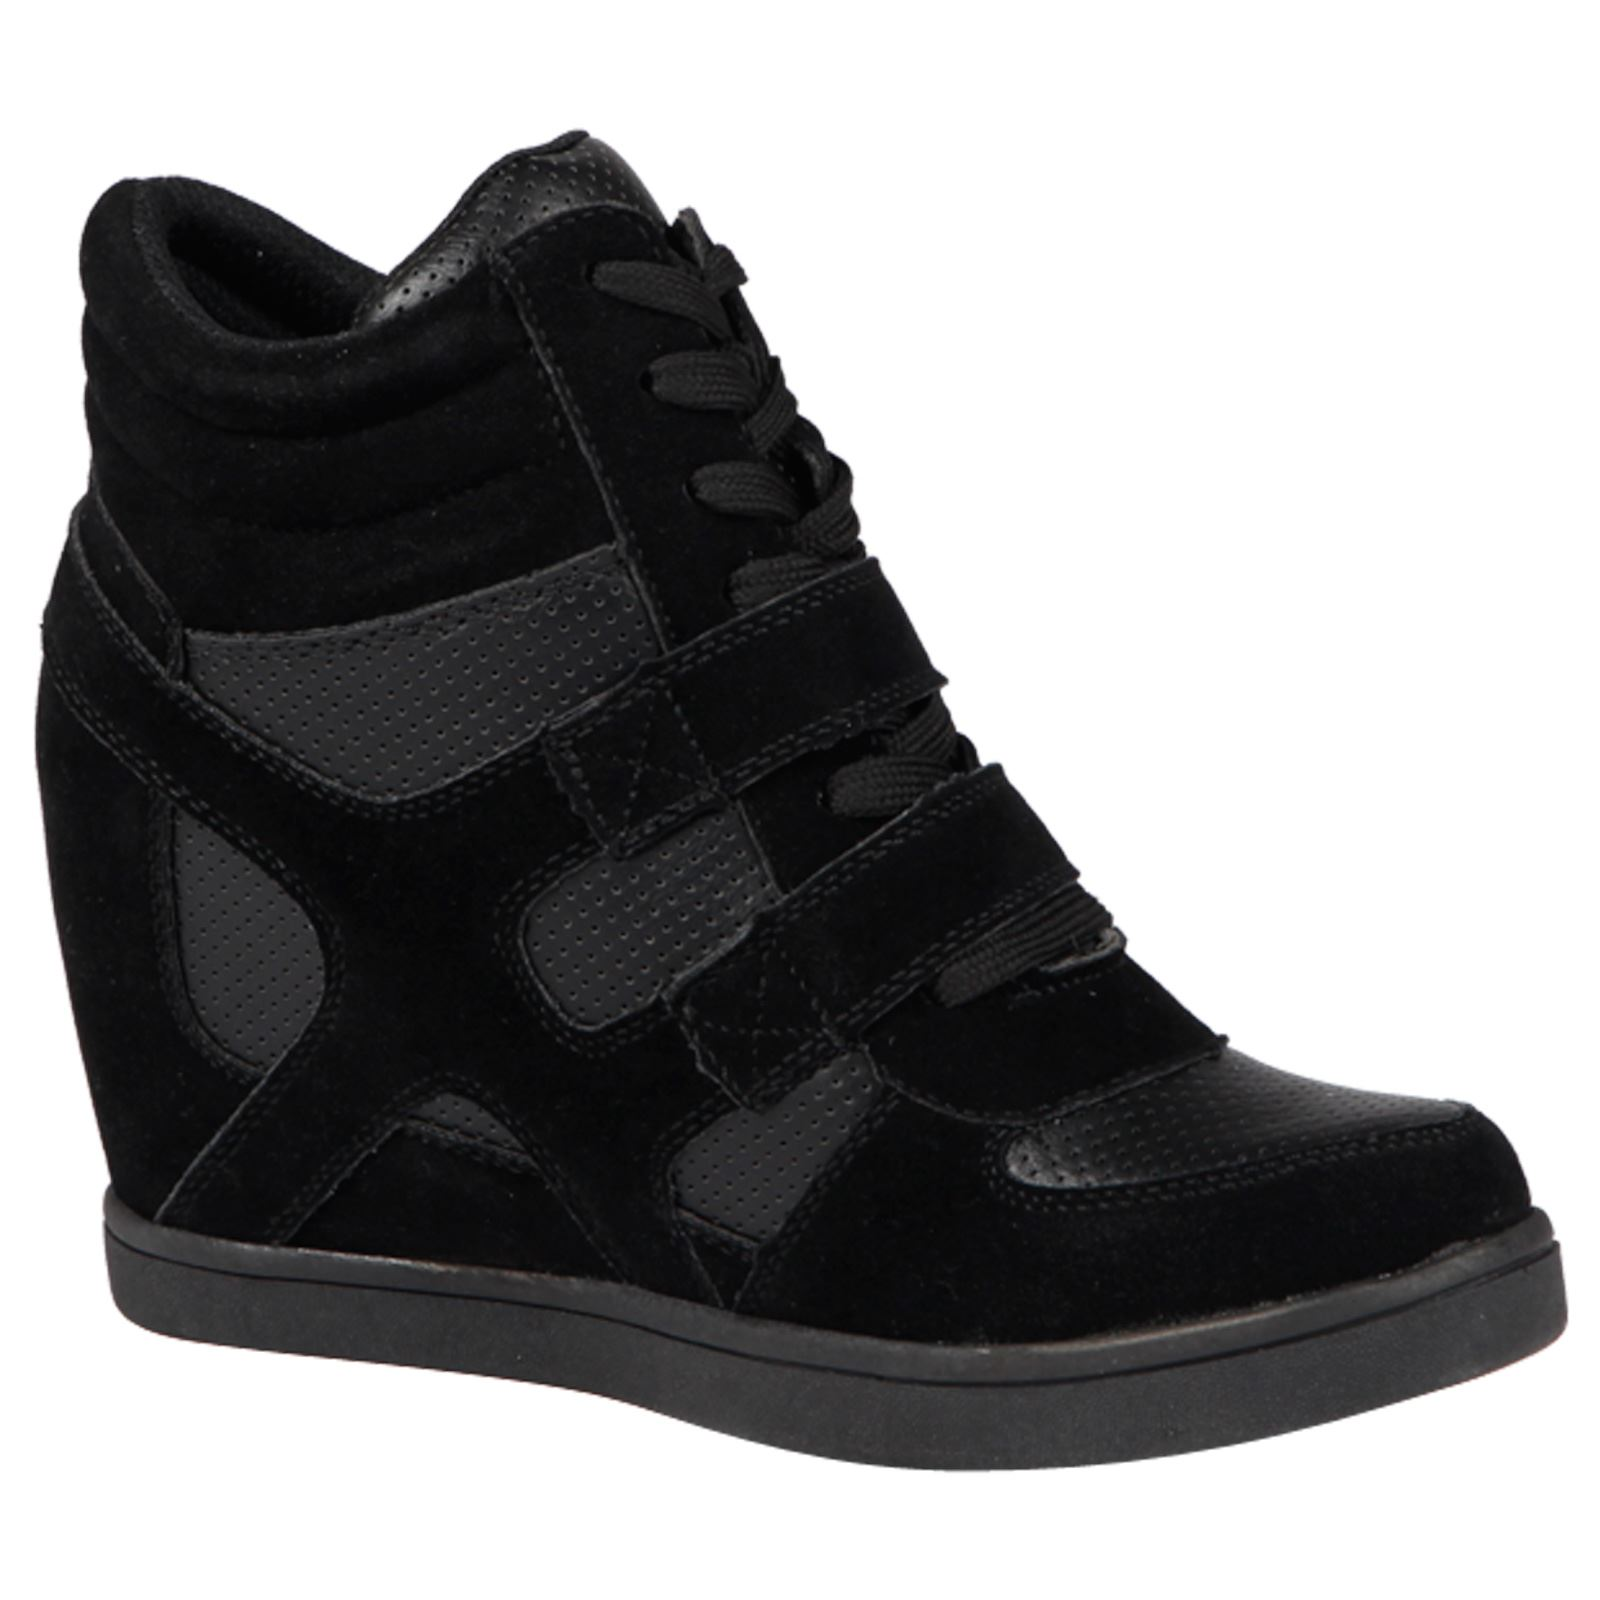 ca613a8bd900 WOMENS SHOES LADIES WEDGES TRAINERS LACE UP HIGH TOP BOOTS ANKLE MID ...